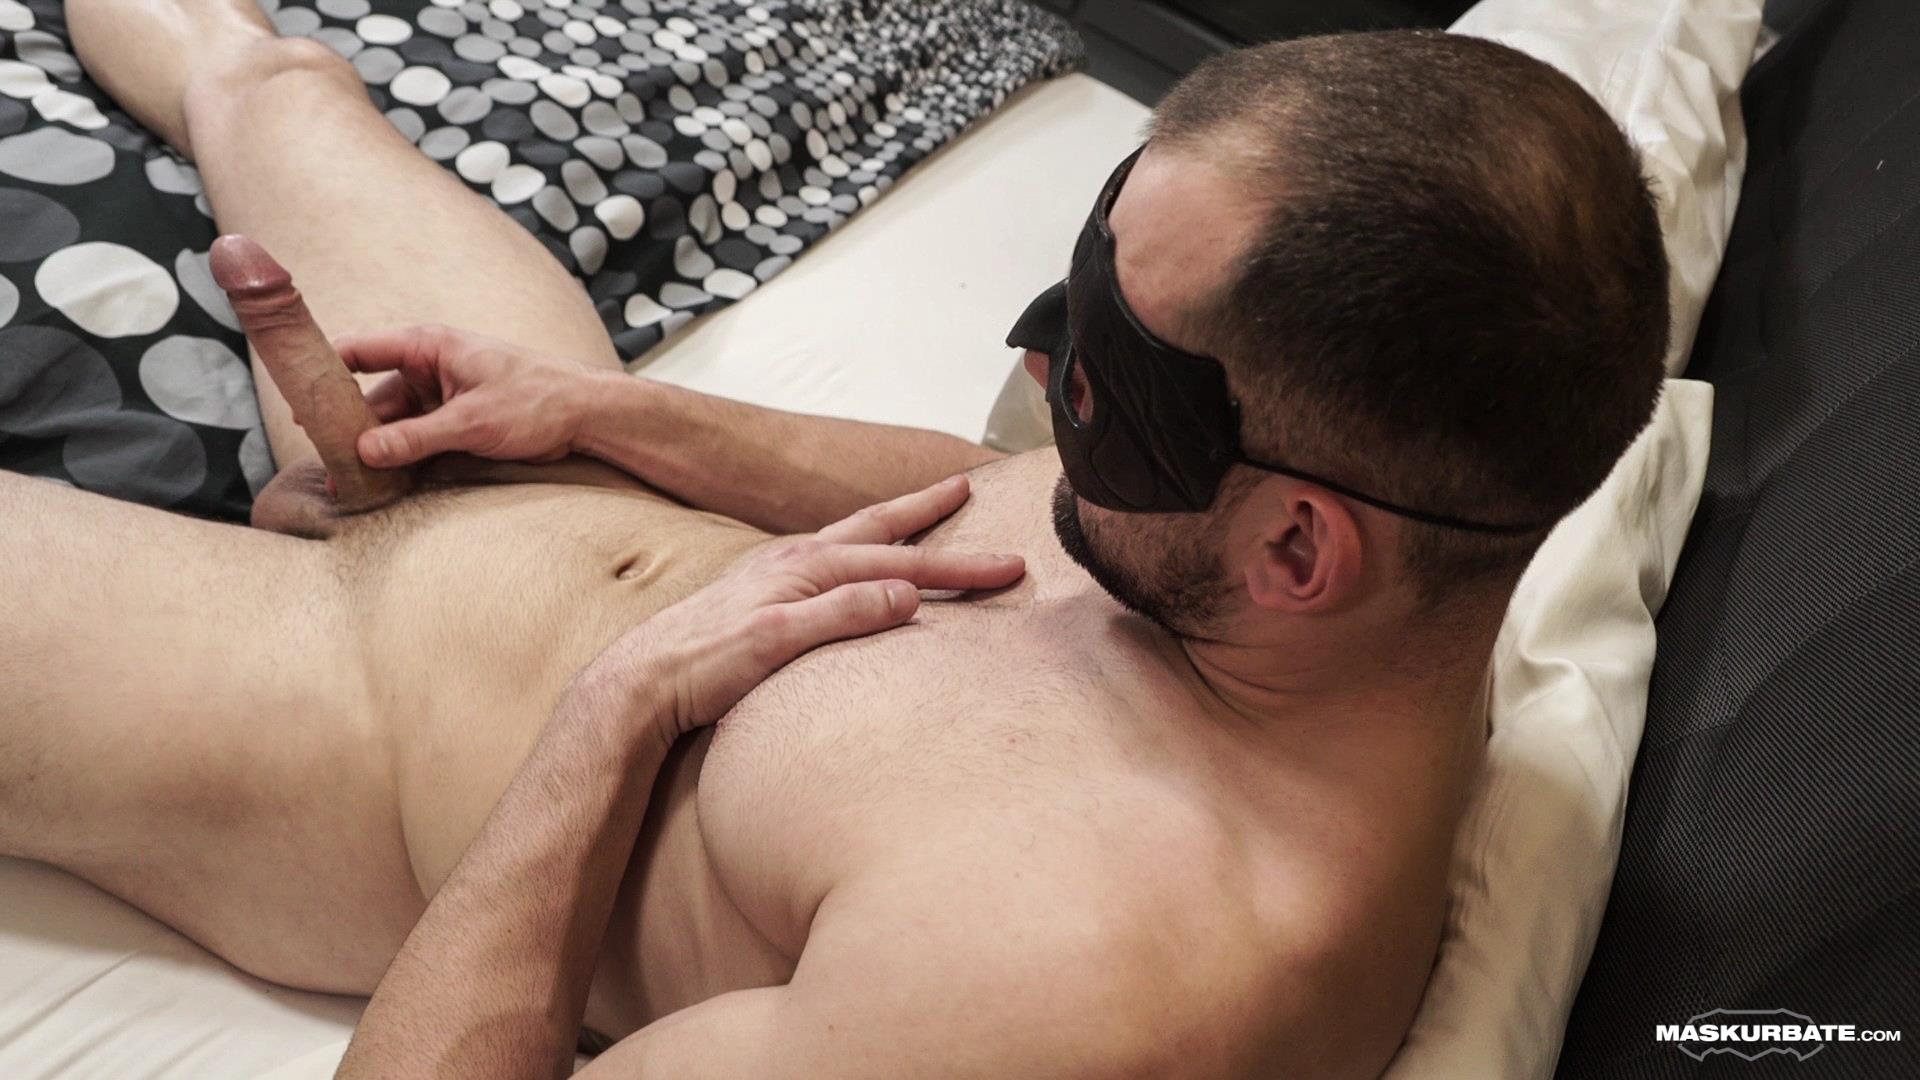 Maskurbate-Obaid-Bisexual-Muscle-Hunk-With-A-Big-Uncut-Cock-Jerking-off-11 Bisexual Muscle Hunk Jerks Off His Big Uncut Cock